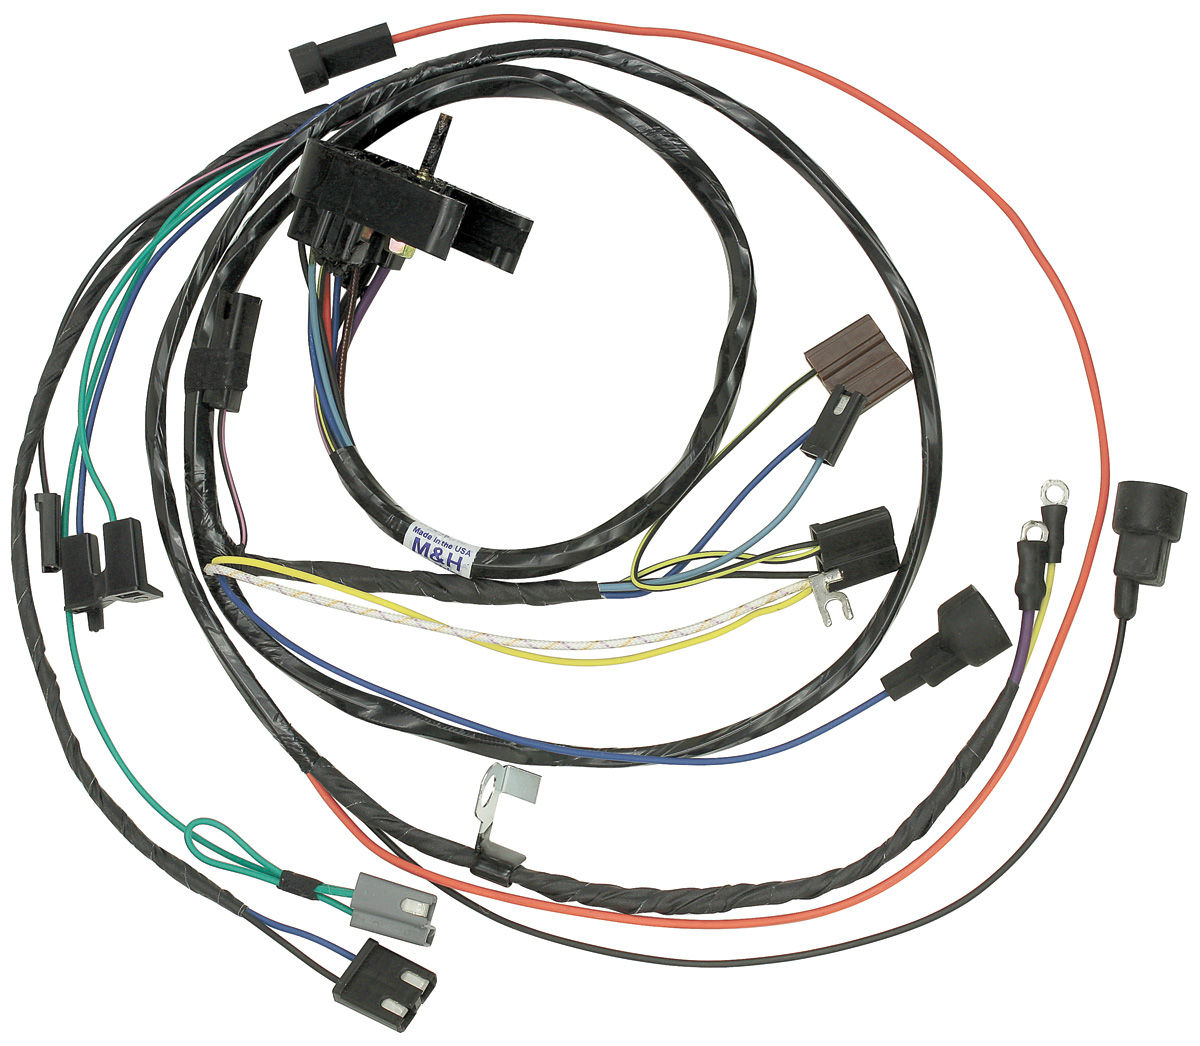 14700 lrg m&h 1970 monte carlo engine harness v8 (with automatic monte carlo wiring harness at bayanpartner.co